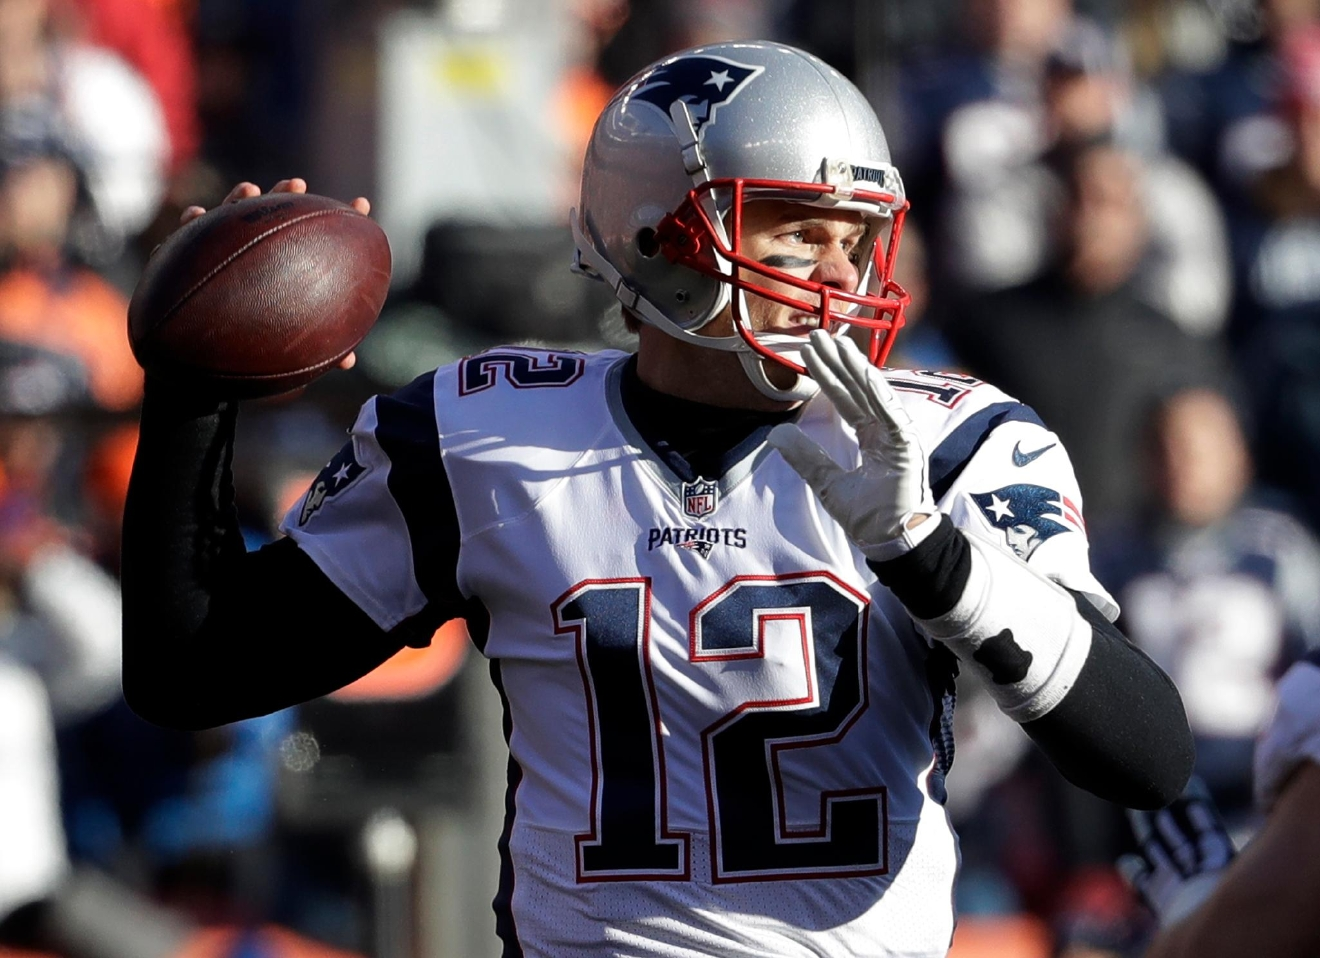 New England Patriots quarterback Tom Brady passes against the Denver Broncos during the first half of an NFL football game Sunday, Dec. 18, 2016, in Denver. (AP Photo/Jack Dempsey)